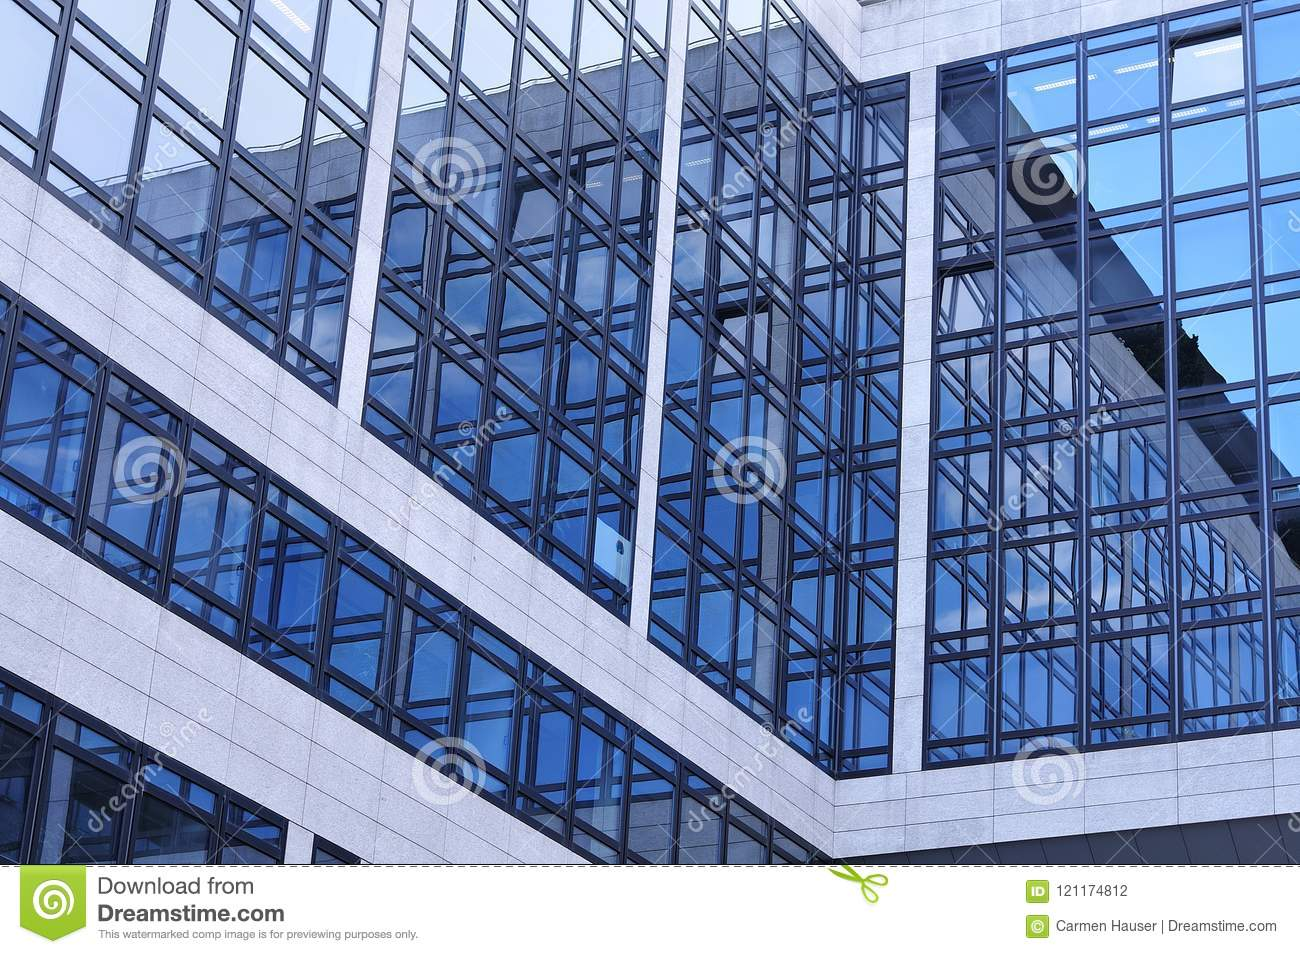 Office building facades Wood Facades In Business District Of City Constructed With Concrete Glass And Steel Flexfacadeslogocolor Glass Facade Of An Office Building Stock Photo Image Of Blue